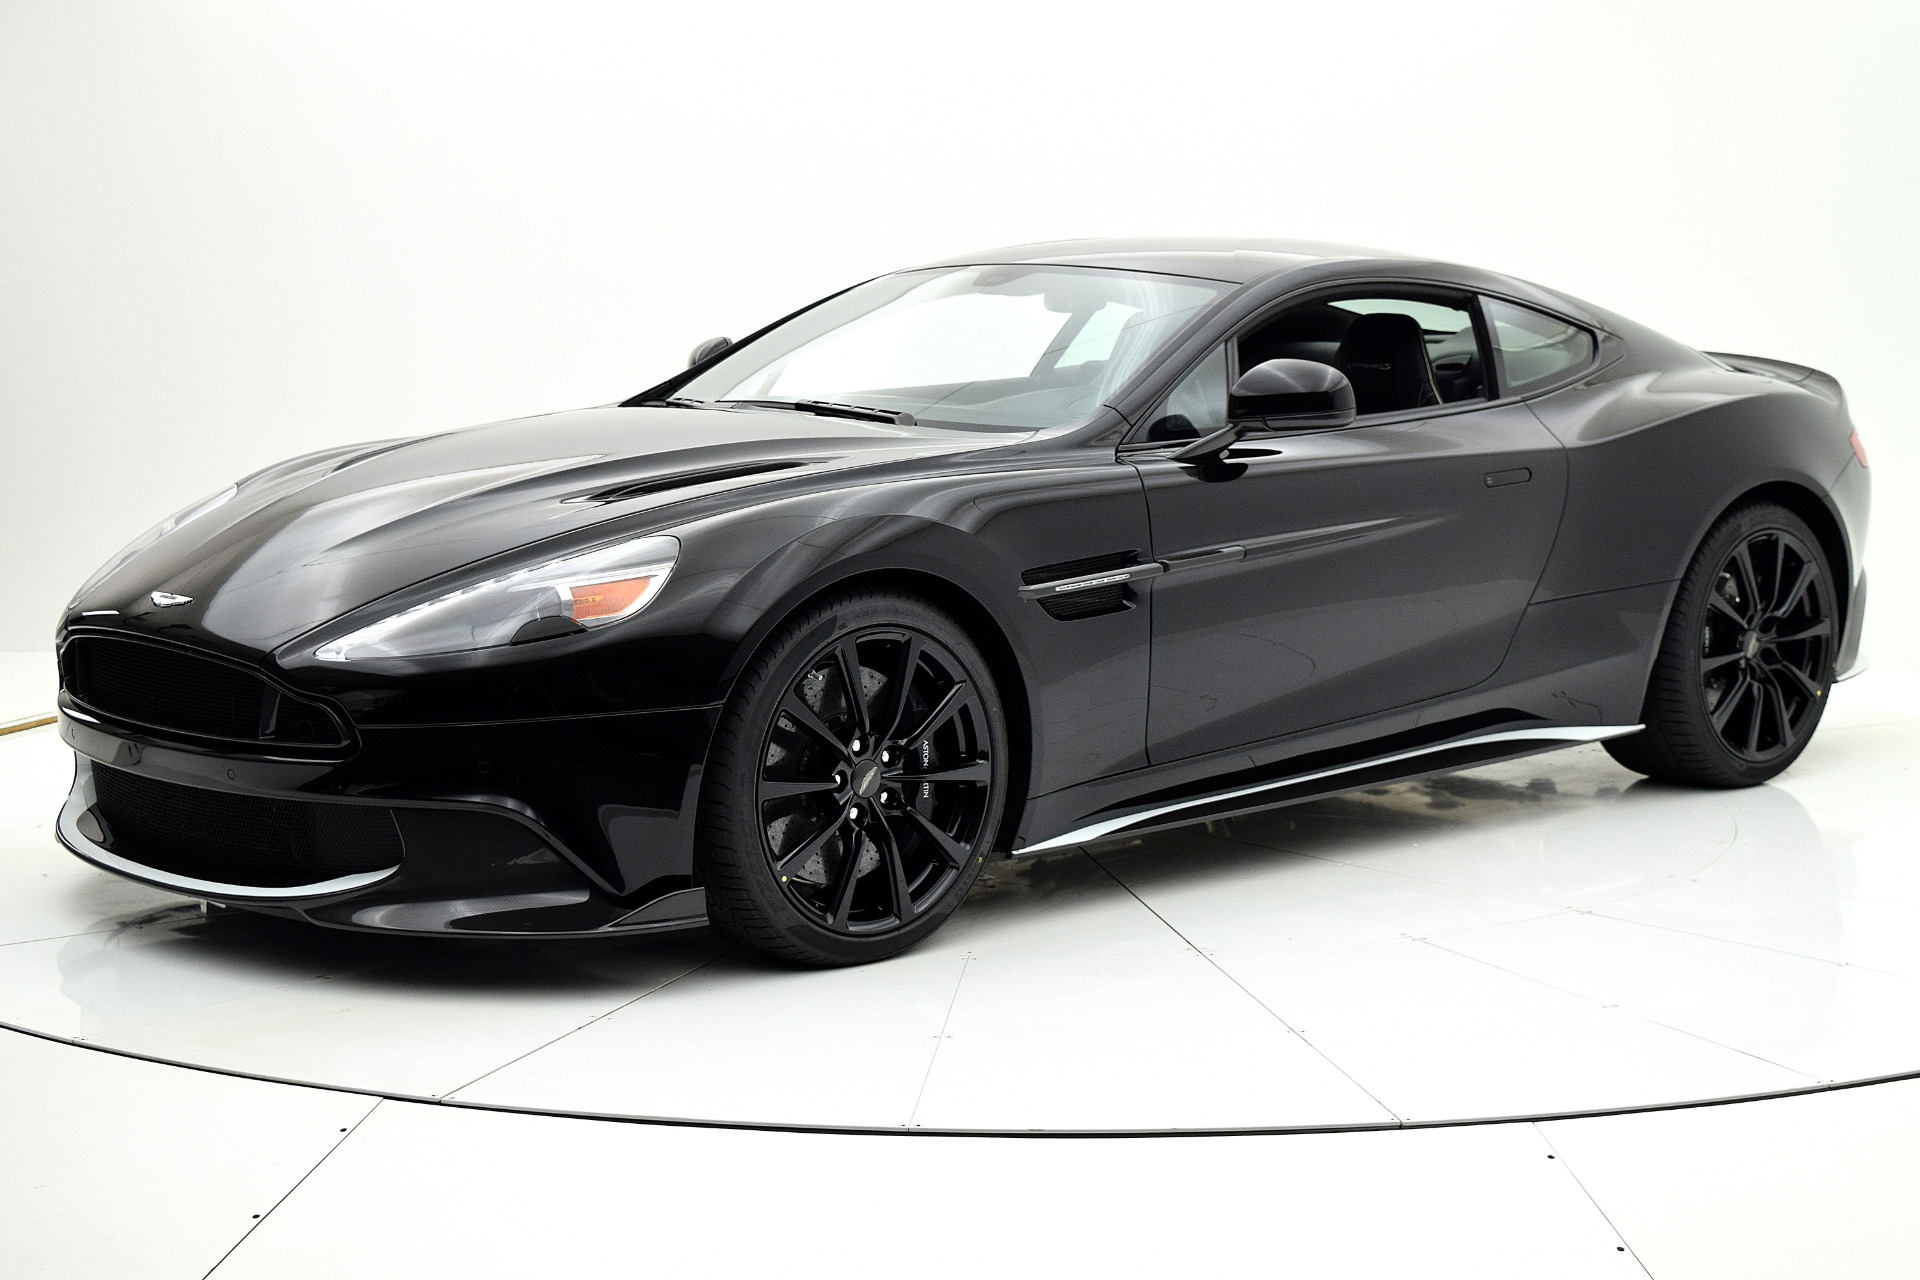 New Aston Martin Vanquish S Coupe For Sale FC - 2018 aston martin vanquish coupe